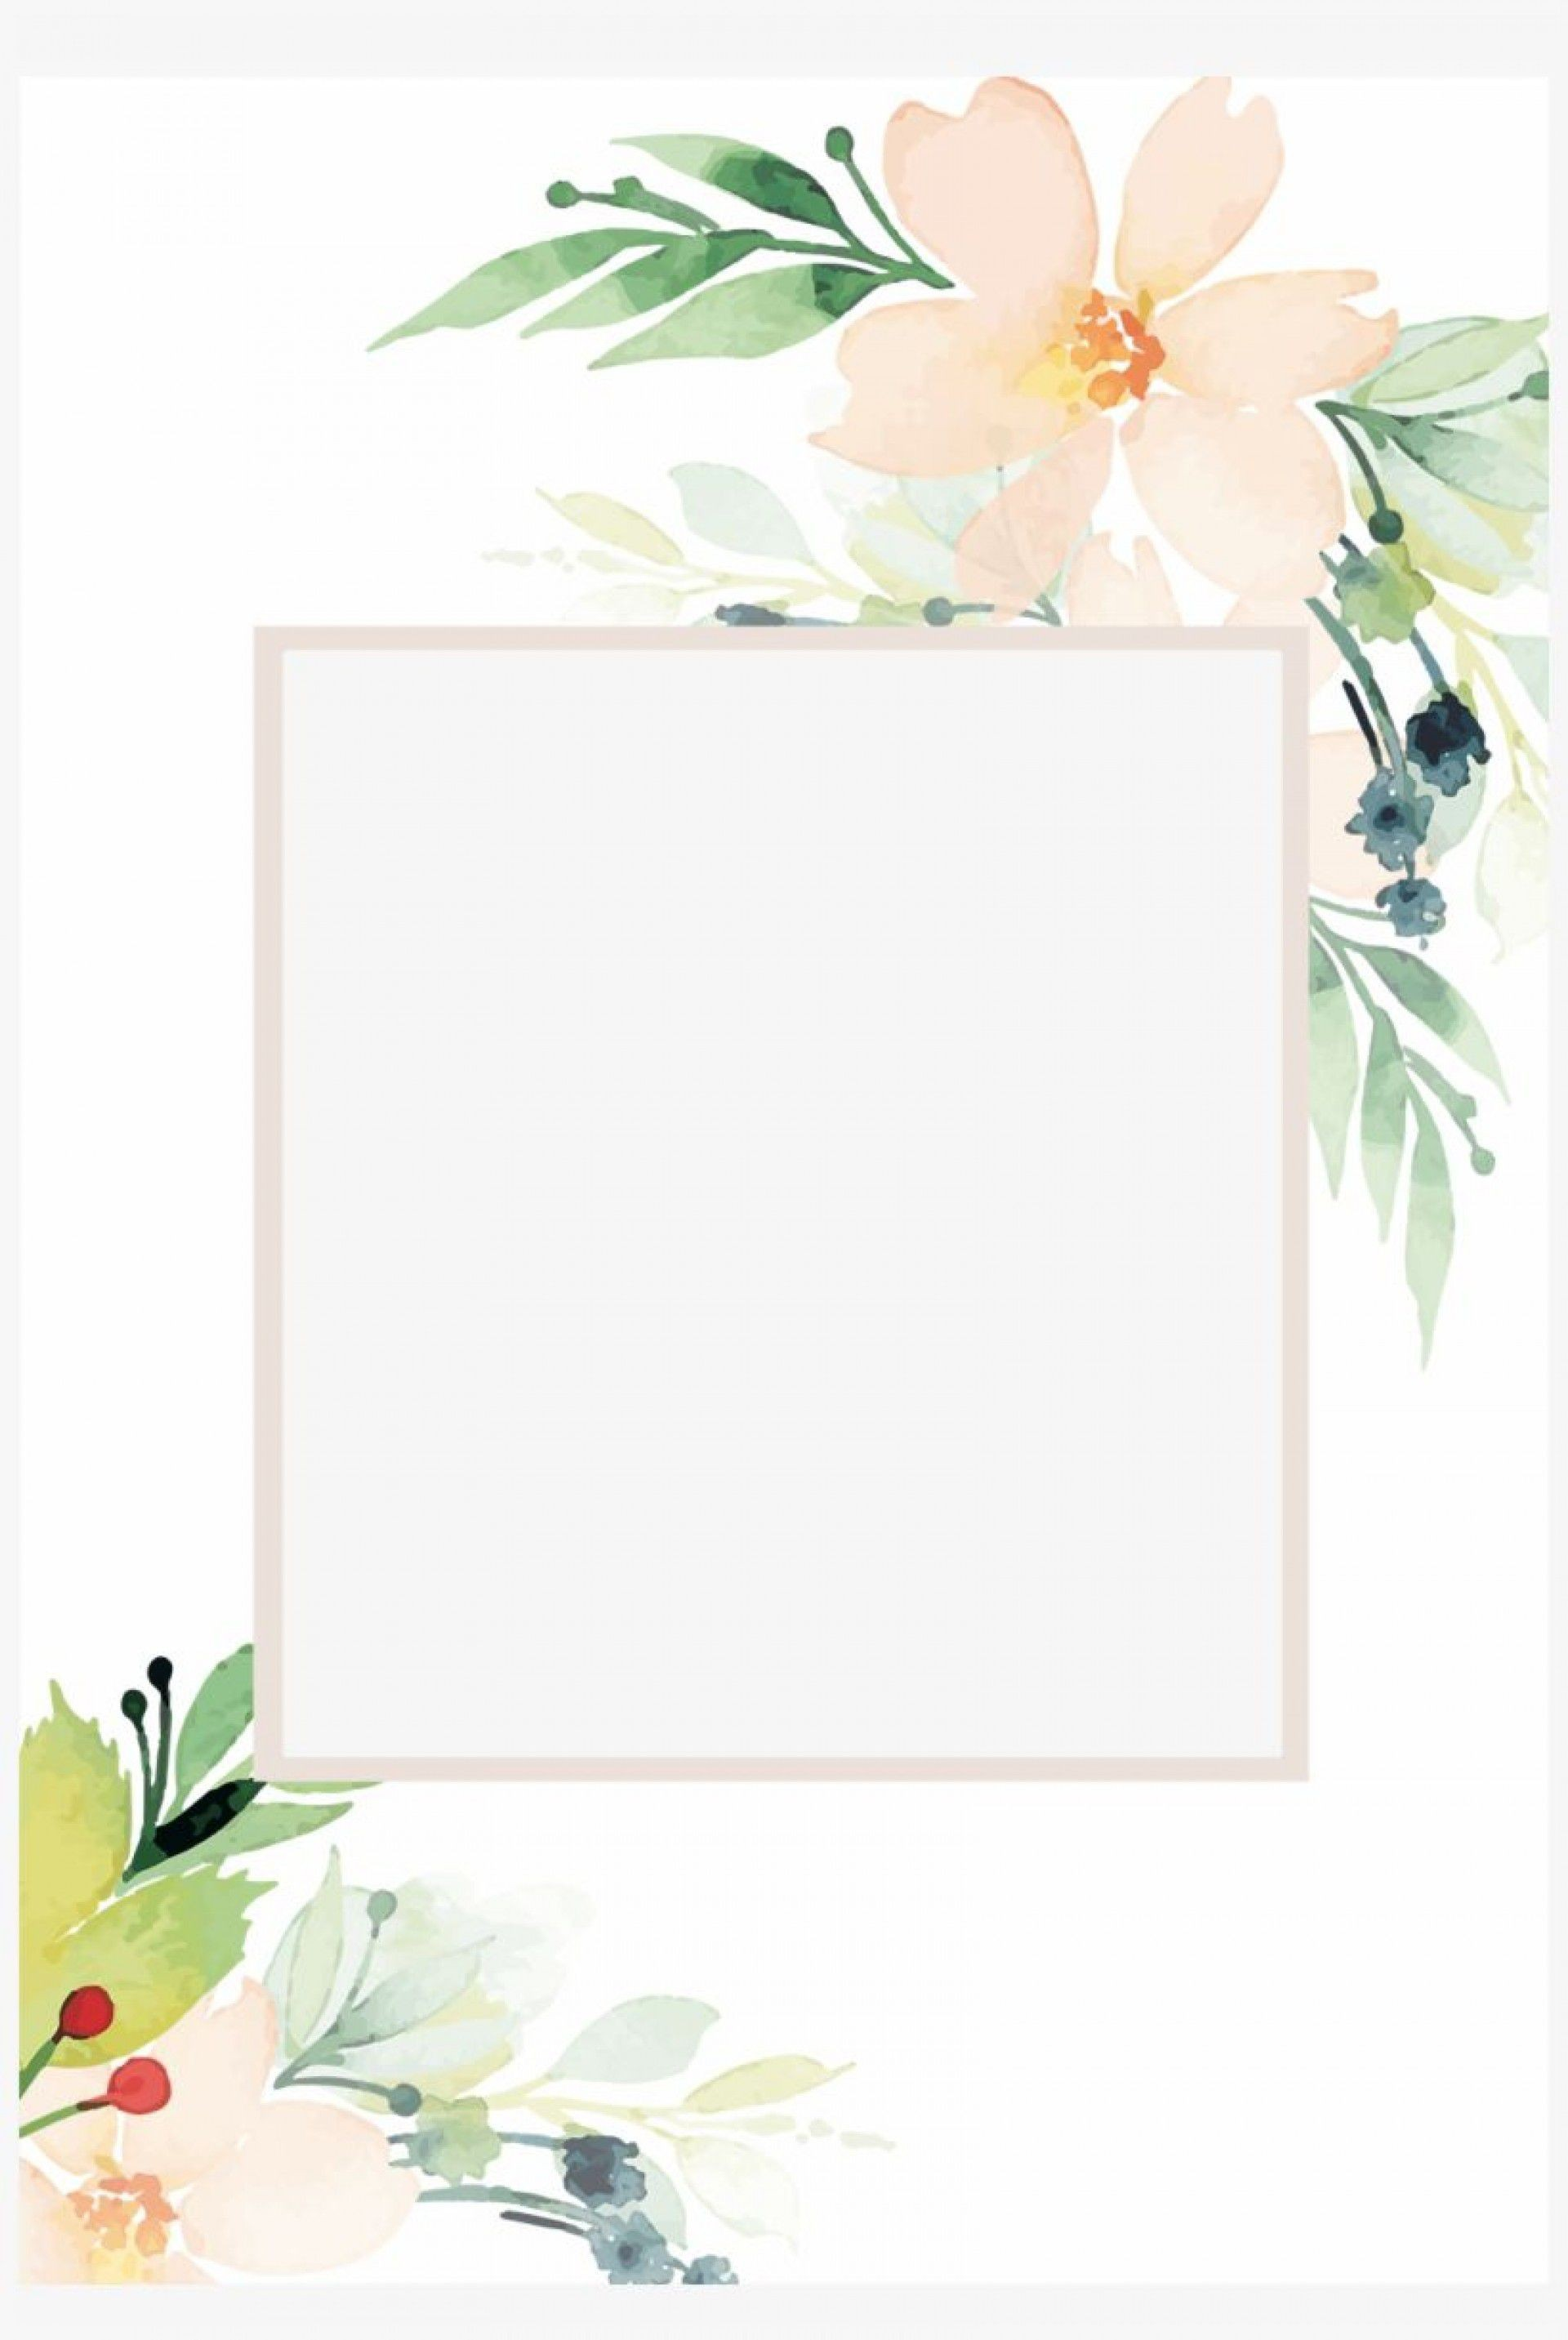 000 Unbelievable Free Printable Photo Card Template Concept  Templates Birthday Thank You1920